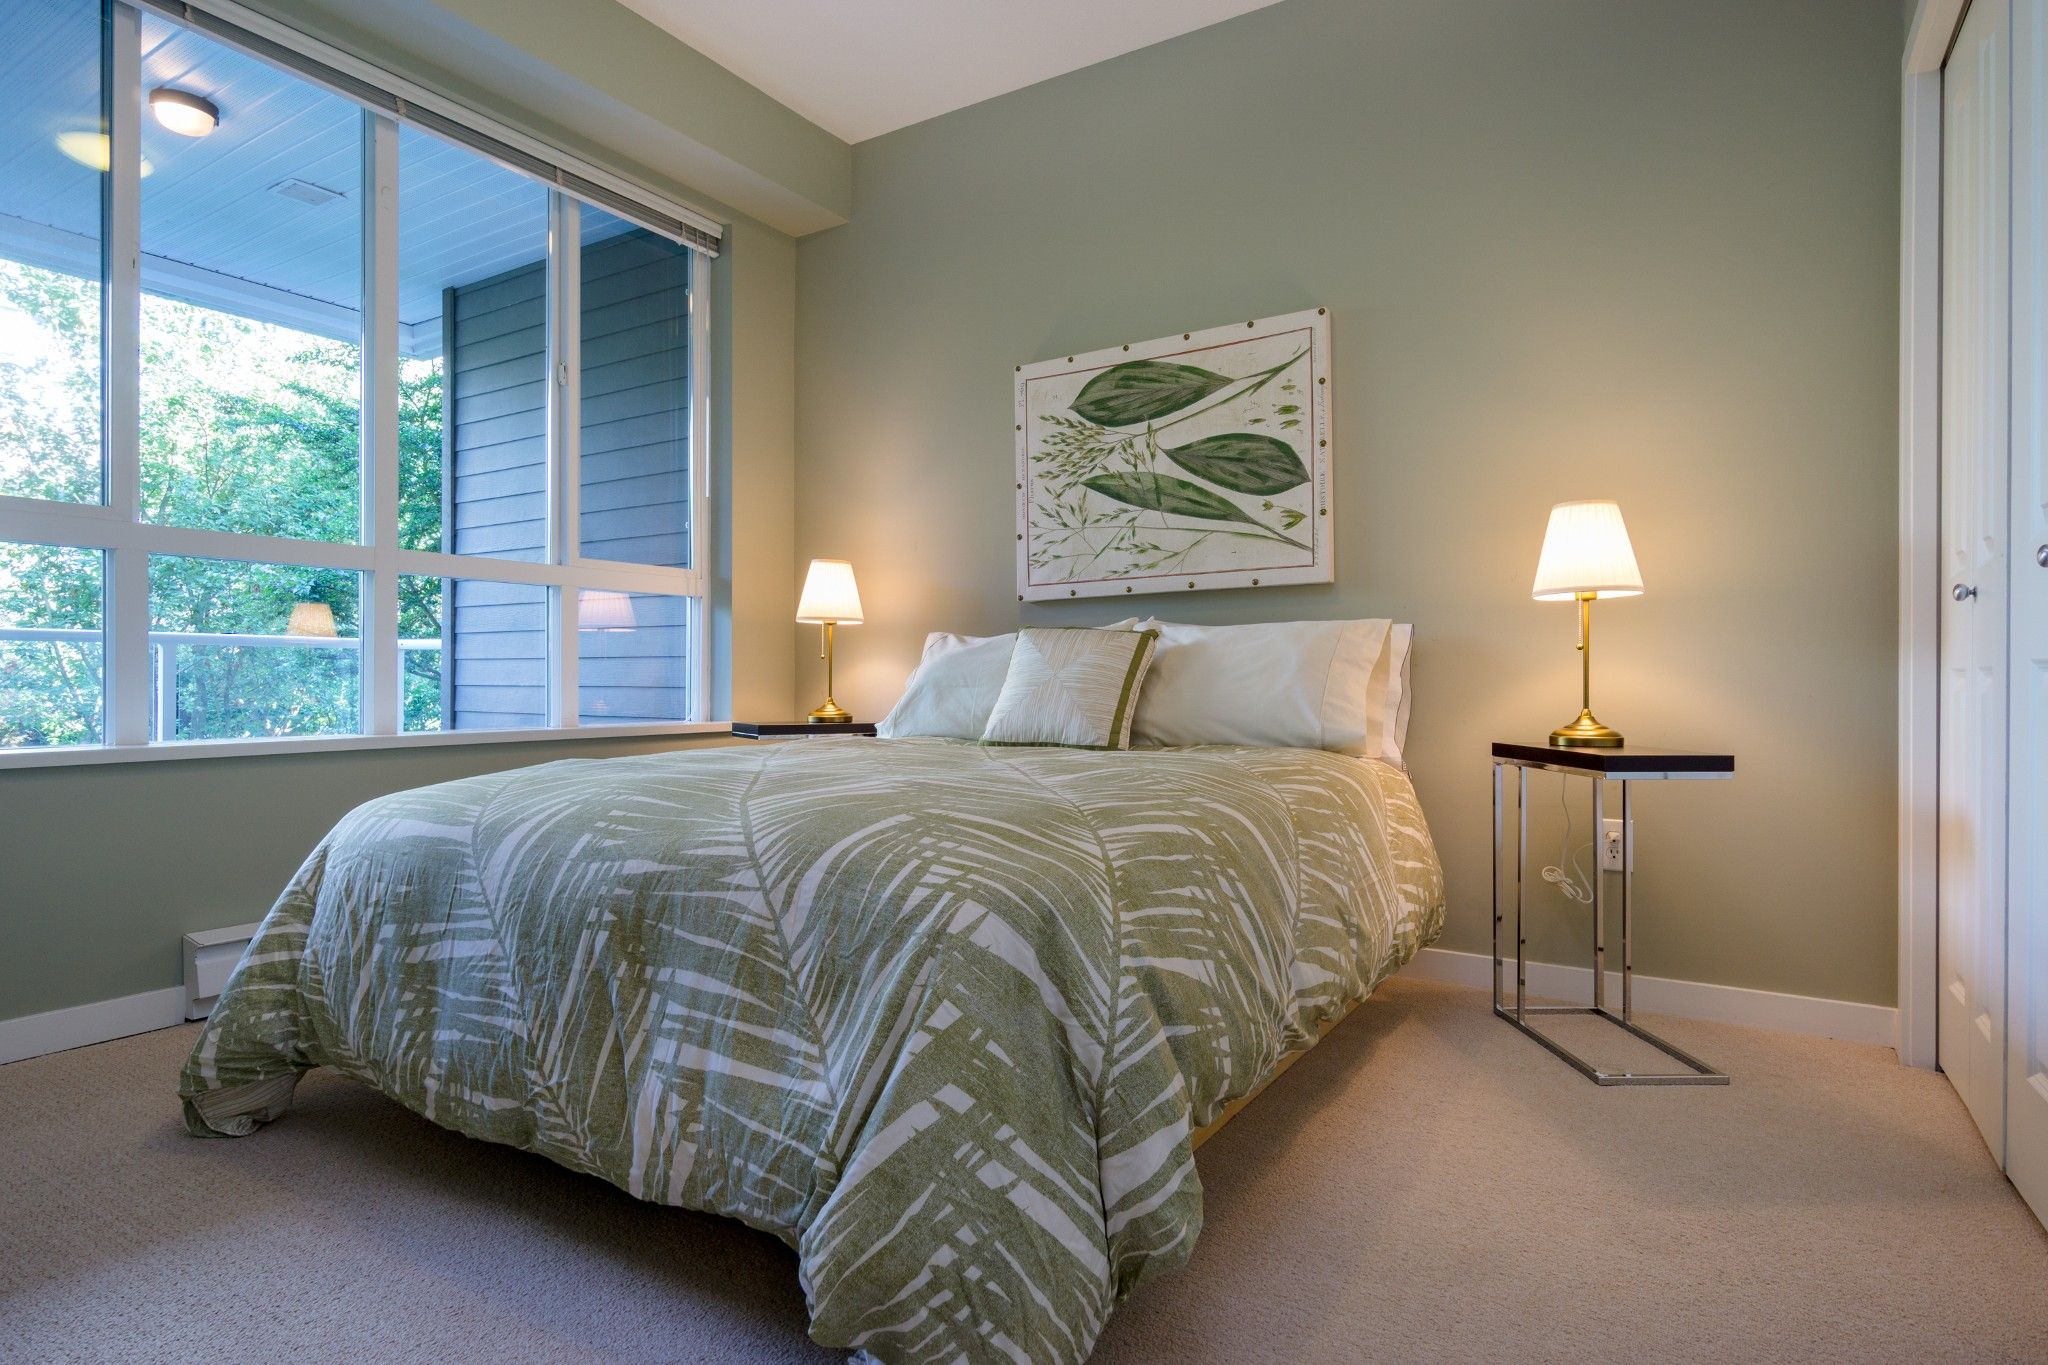 Photo 21: Photos: 208 3551 FOSTER Avenue in Vancouver: Collingwood VE Condo for sale (Vancouver East)  : MLS®# R2291555